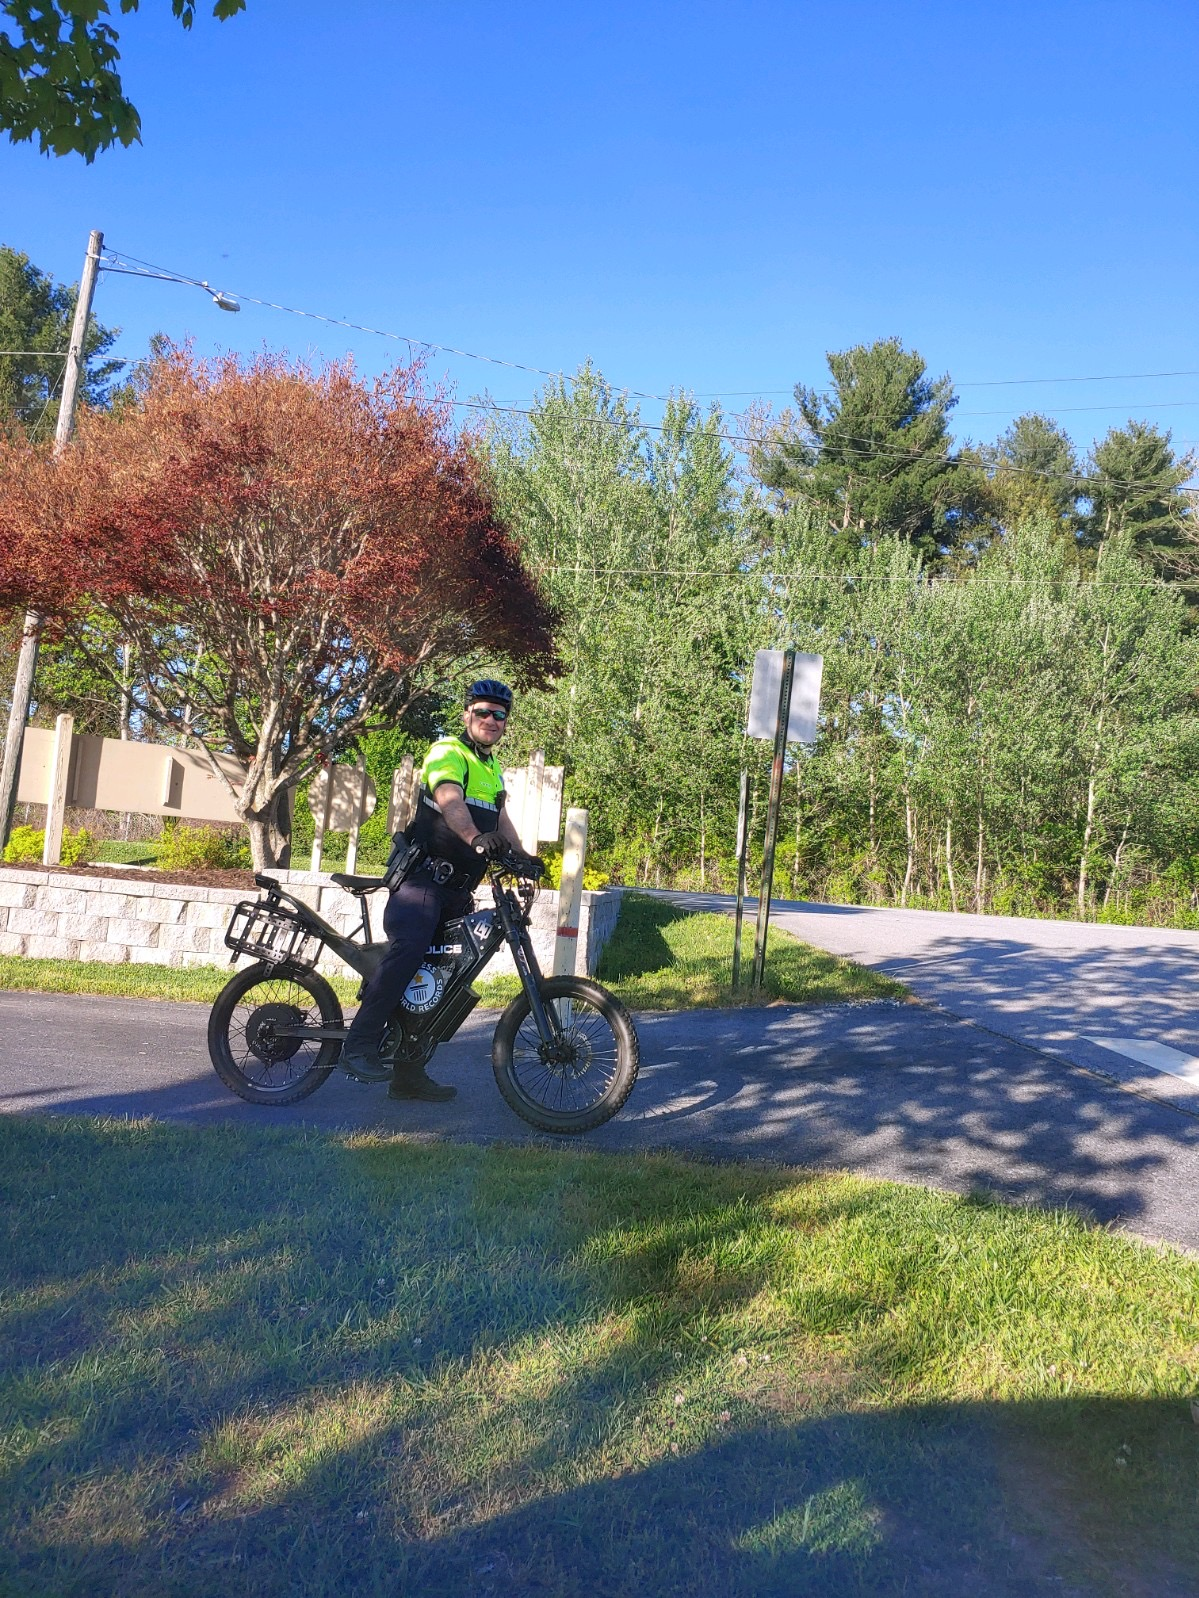 Delfast TopCop 50 MPH electric bike gets thumbs up from police testing